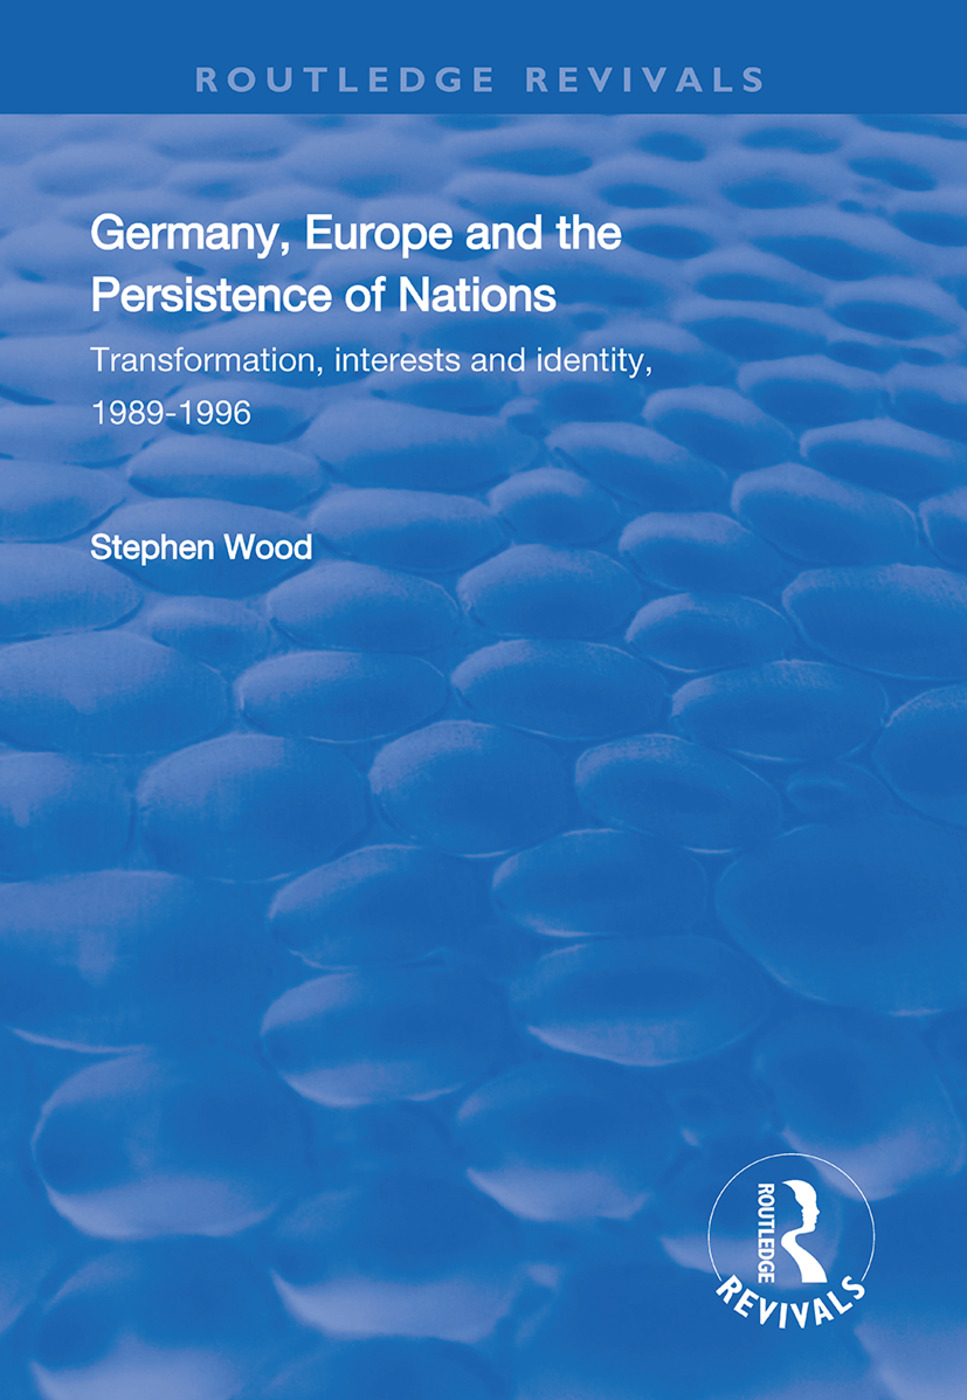 Germany, Europe and the Persistence of Nations: Transformation, Interests and Identity, 1989-1996 book cover